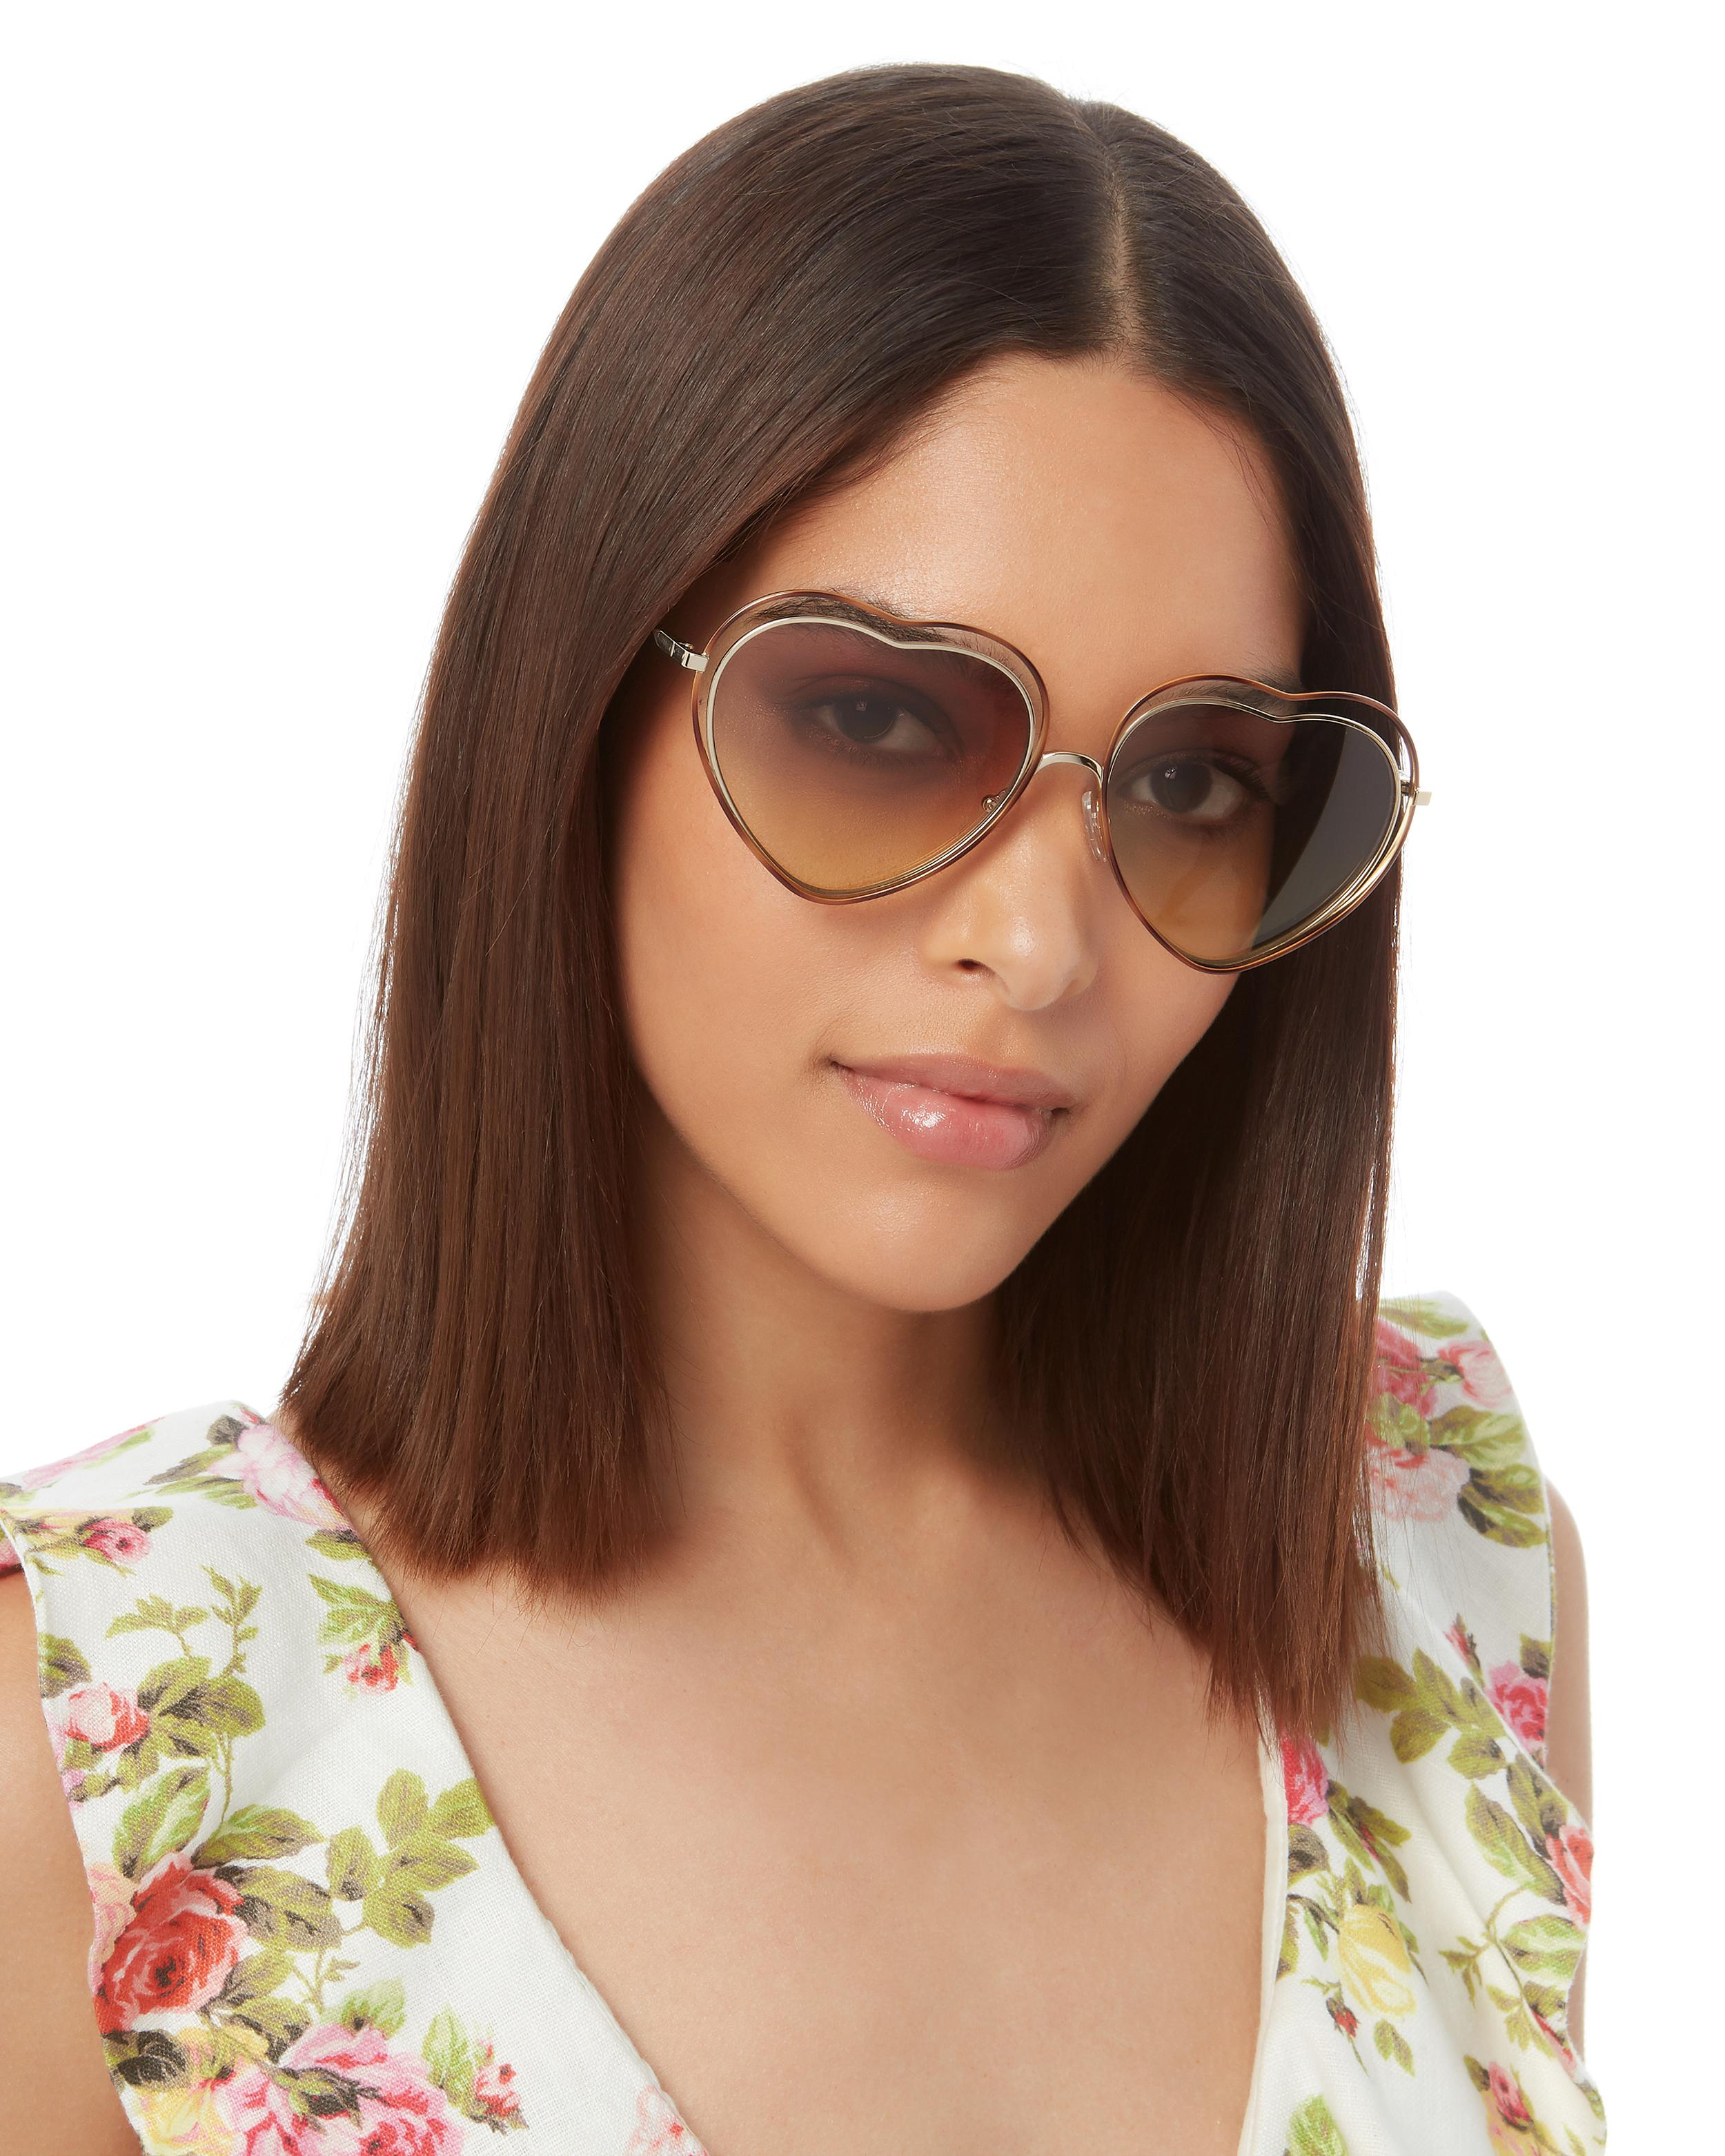 99a919a190 Chloé Poppy Heart-shaped Sunglasses - Bitterroot Public Library